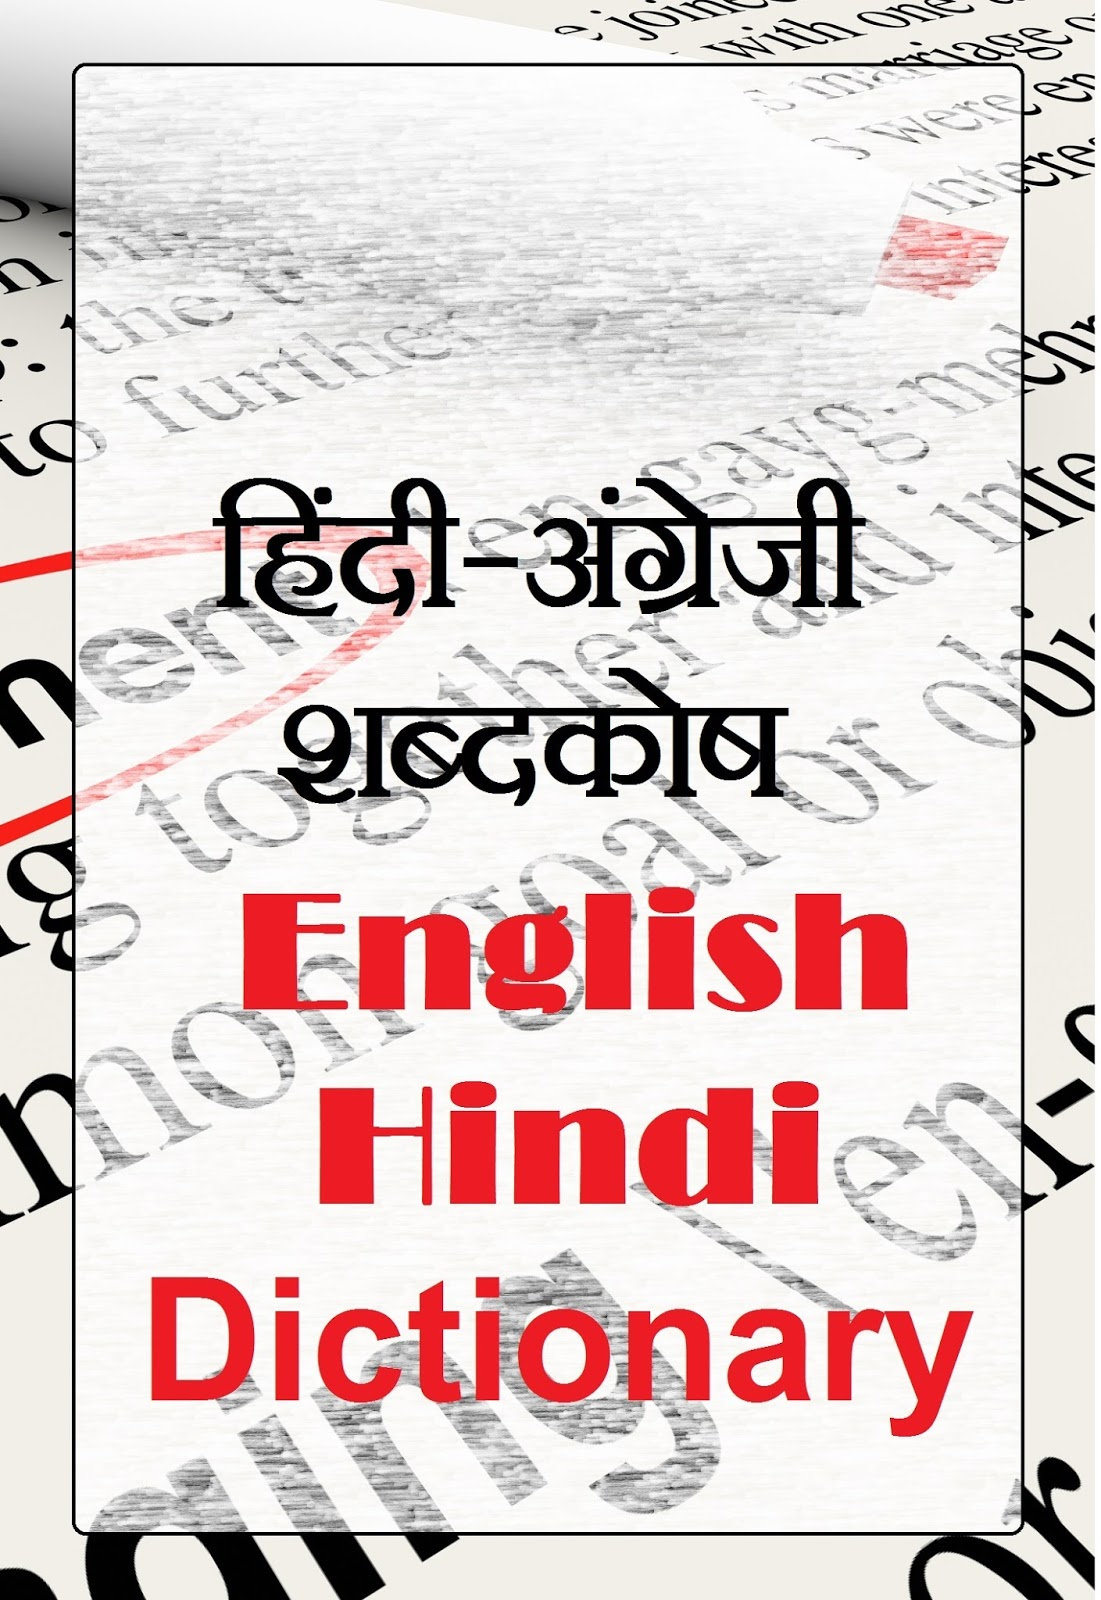 Download english — Hindi dictionary in PDF - free hindi ebooks